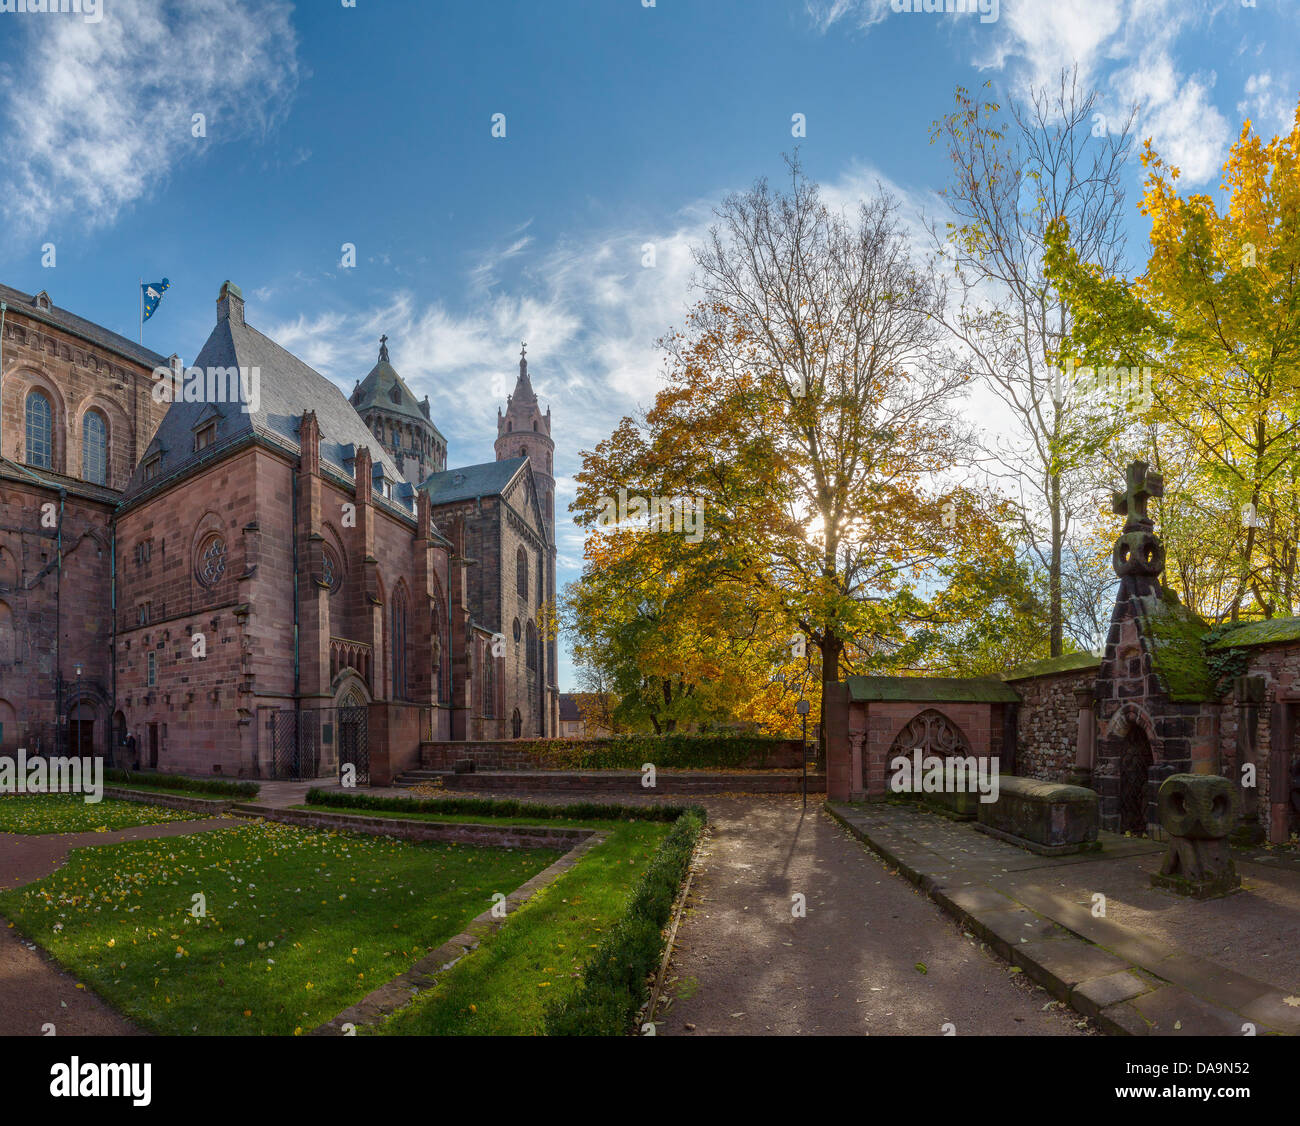 Germany, Europe, Rheinland Pfalz, Worms, cathedral, church, monastery, forest, wood, trees, autumn, - Stock Image